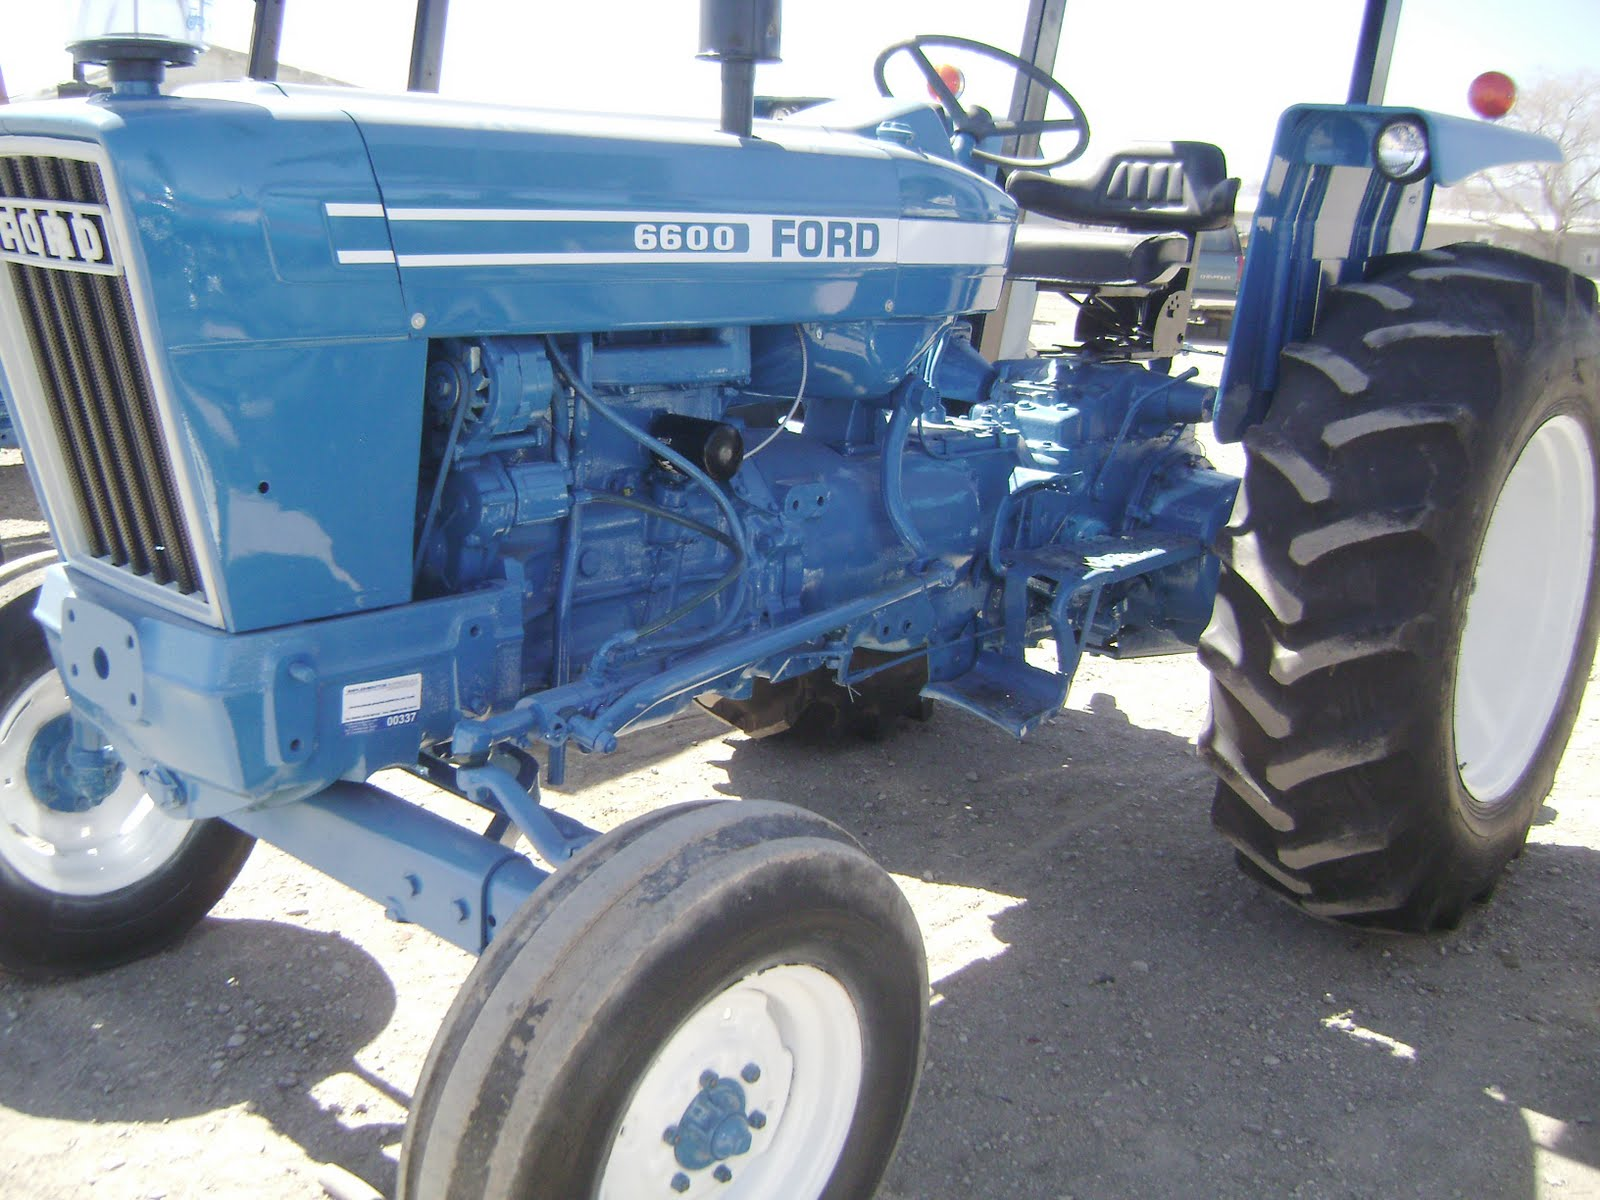 ford 5000 tractor parts diagram ford 5000 tractor parts diagram ford 5000 tractor parts diagram